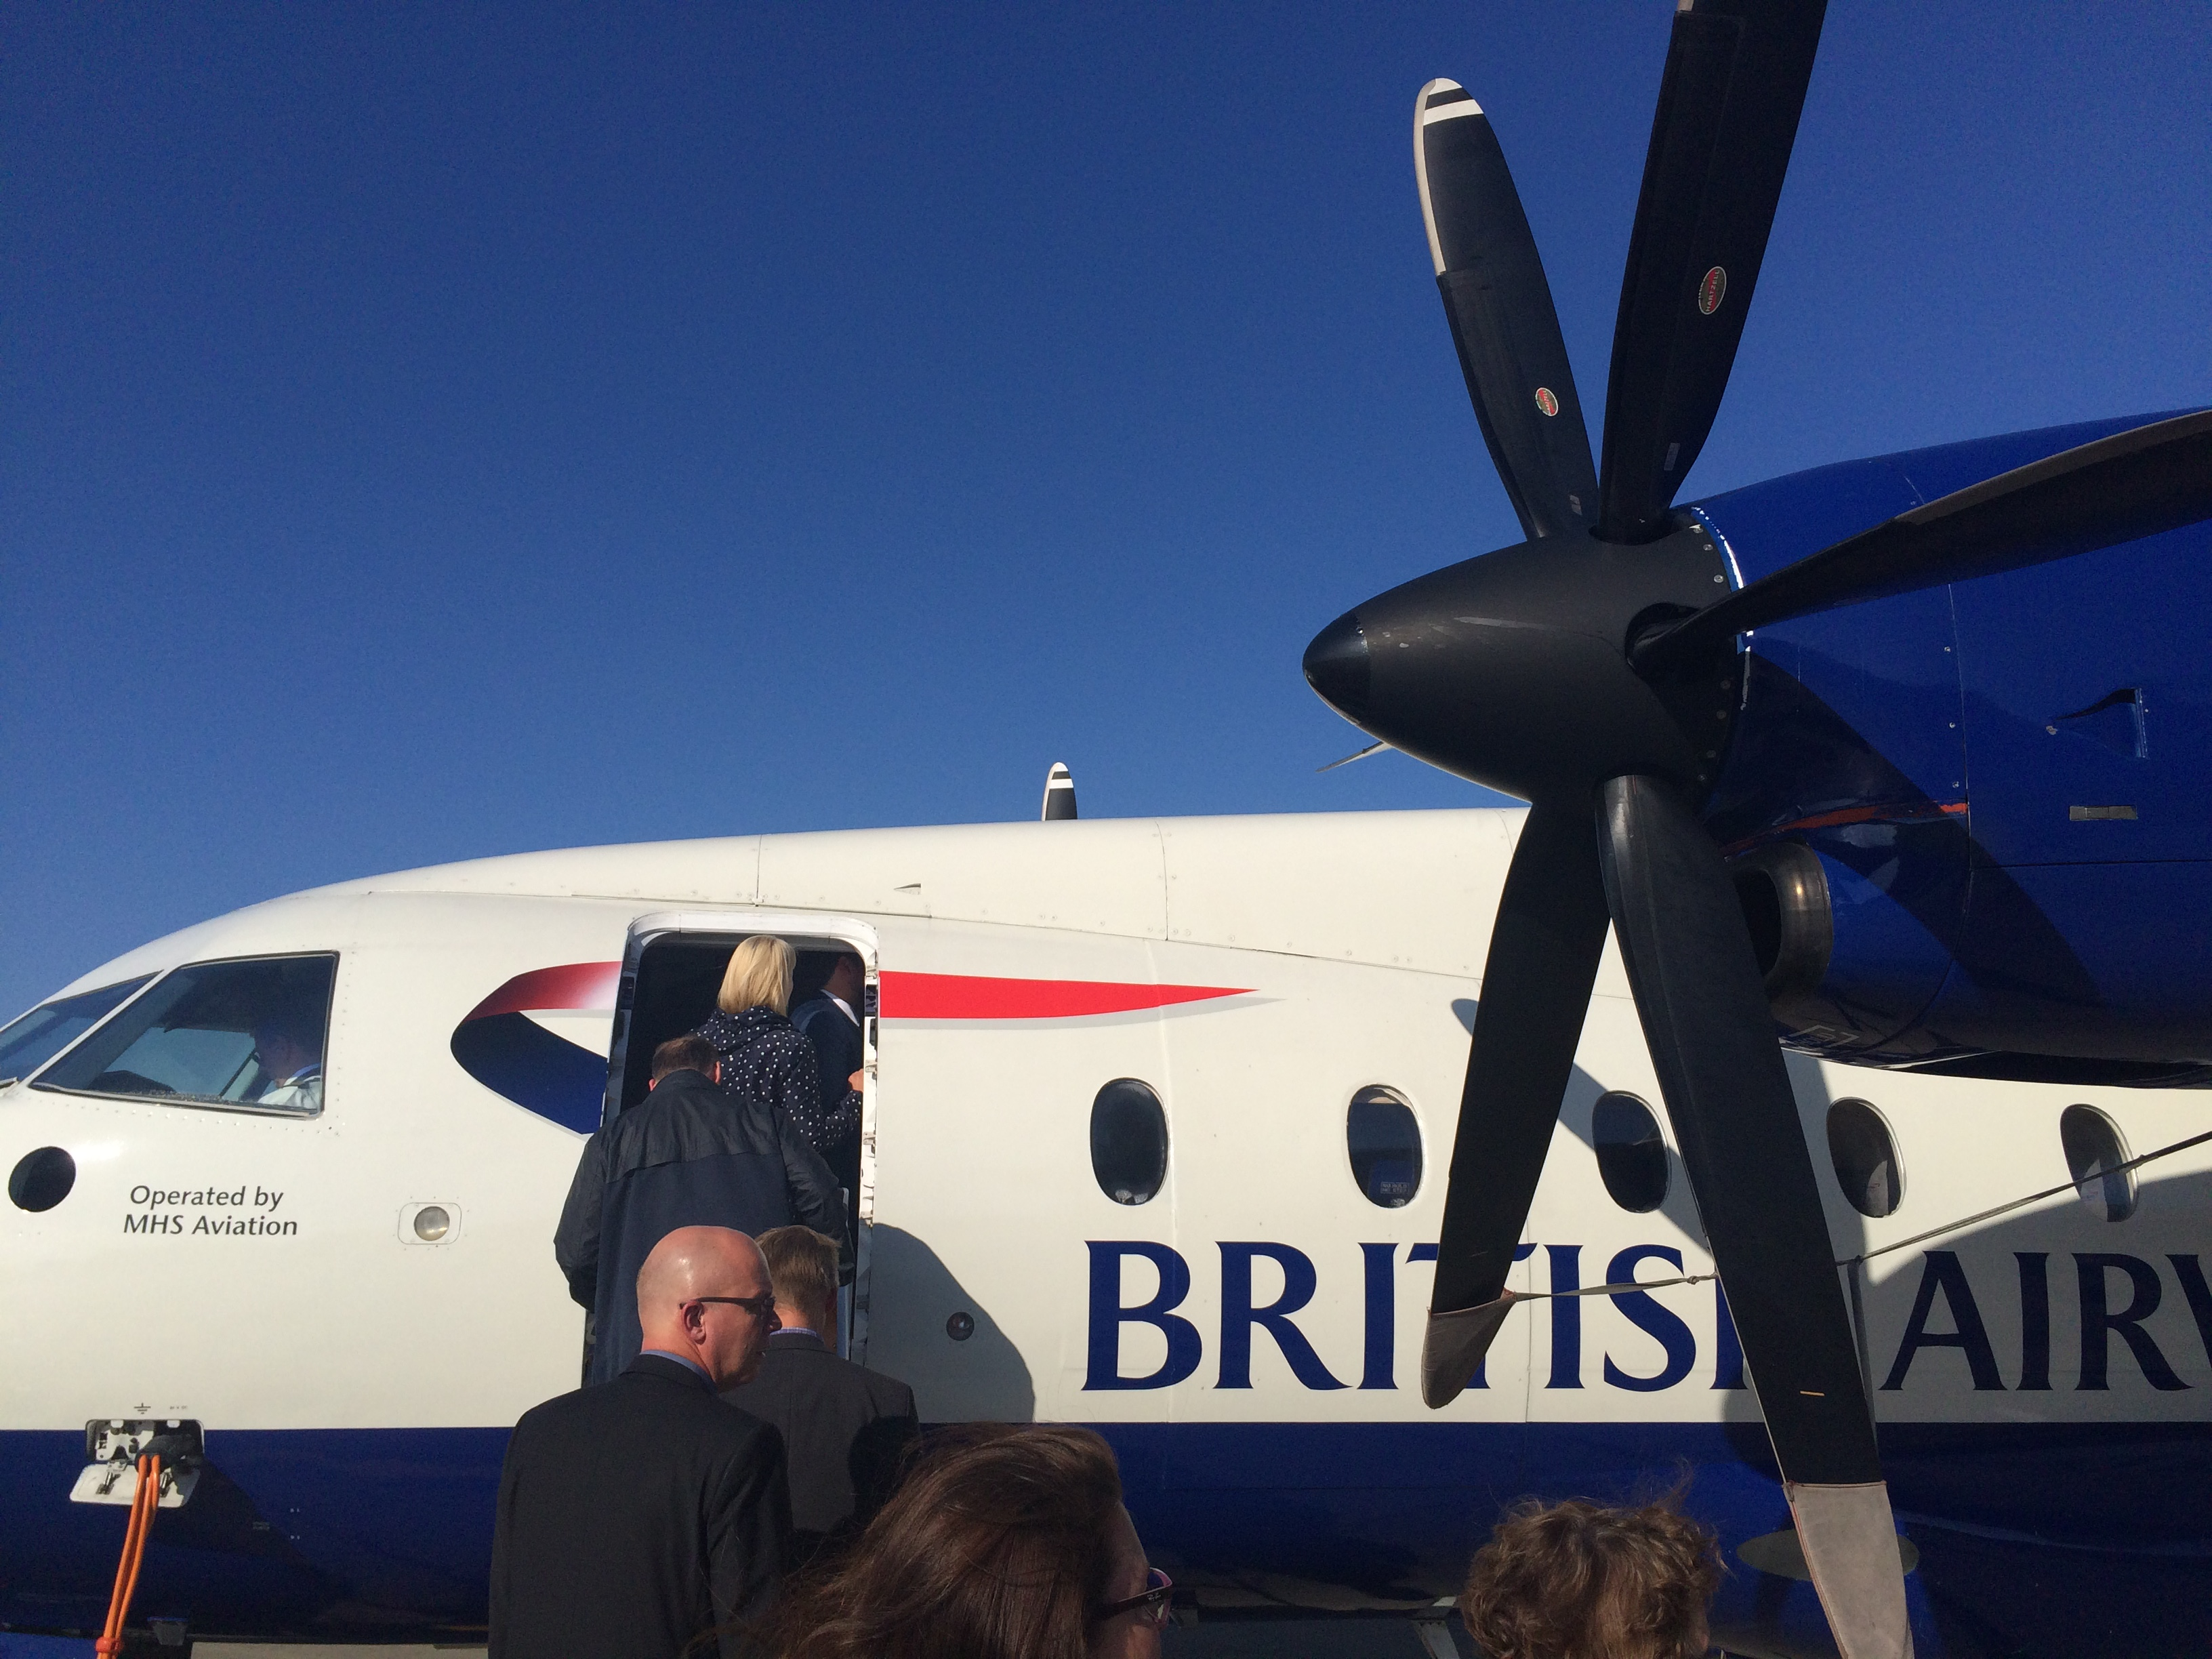 The propeller plane I flew over in.